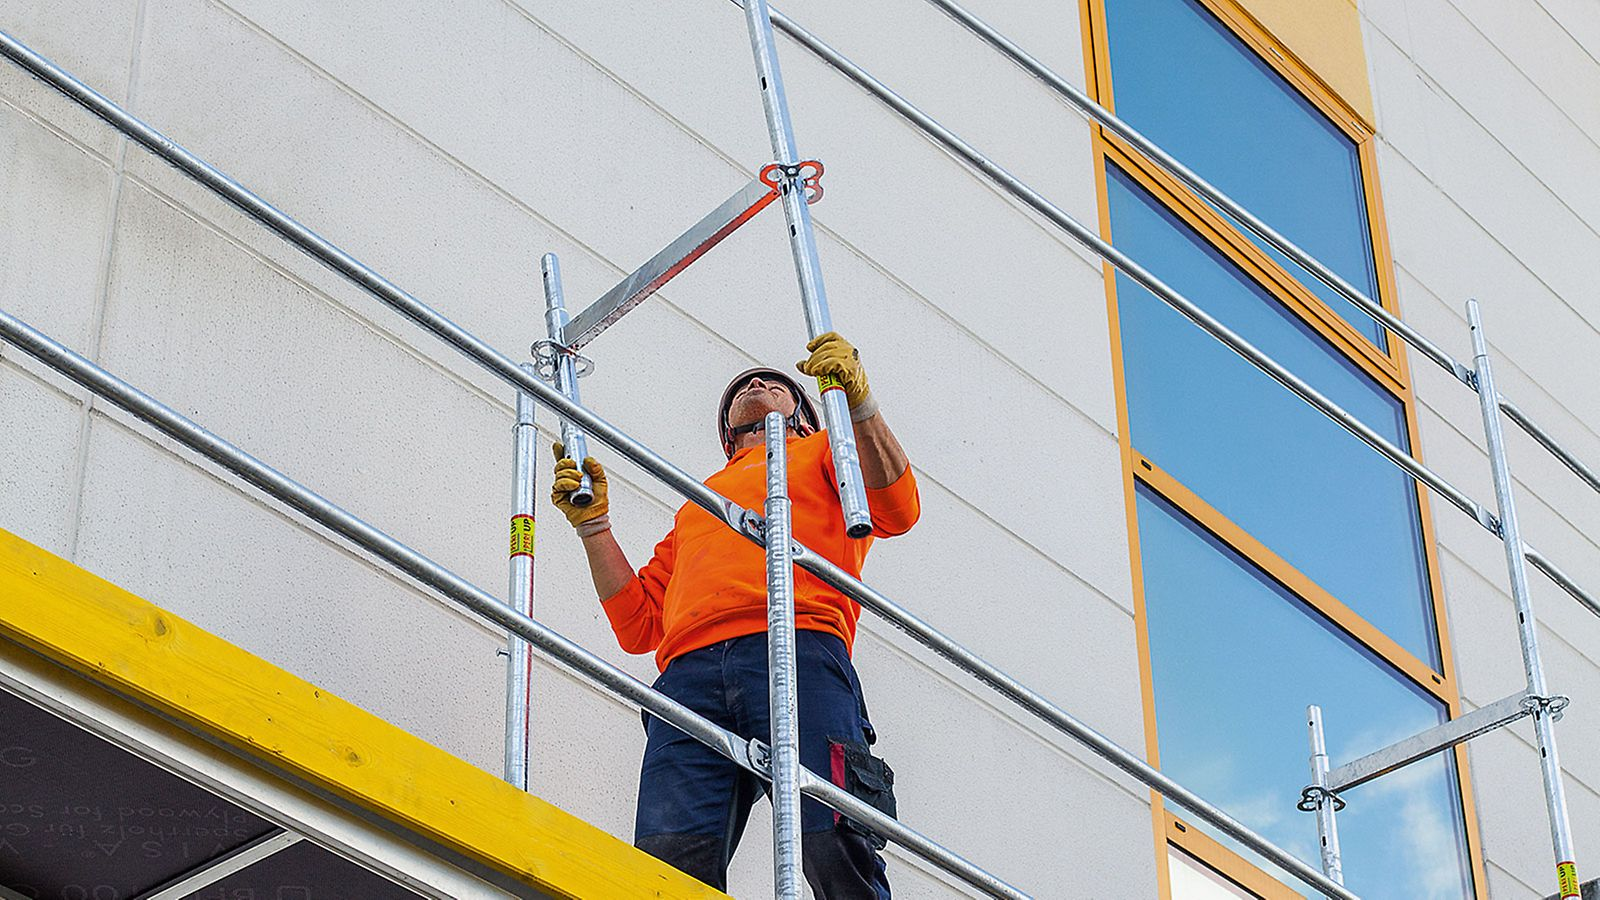 With PERI UP Easy, the focus is on safe assembly operations: in addition, it offers safety in the system itself because the guardrail for the next level is mounted from the scaffolding level below with the Easy Frame and without requiring any additional components.